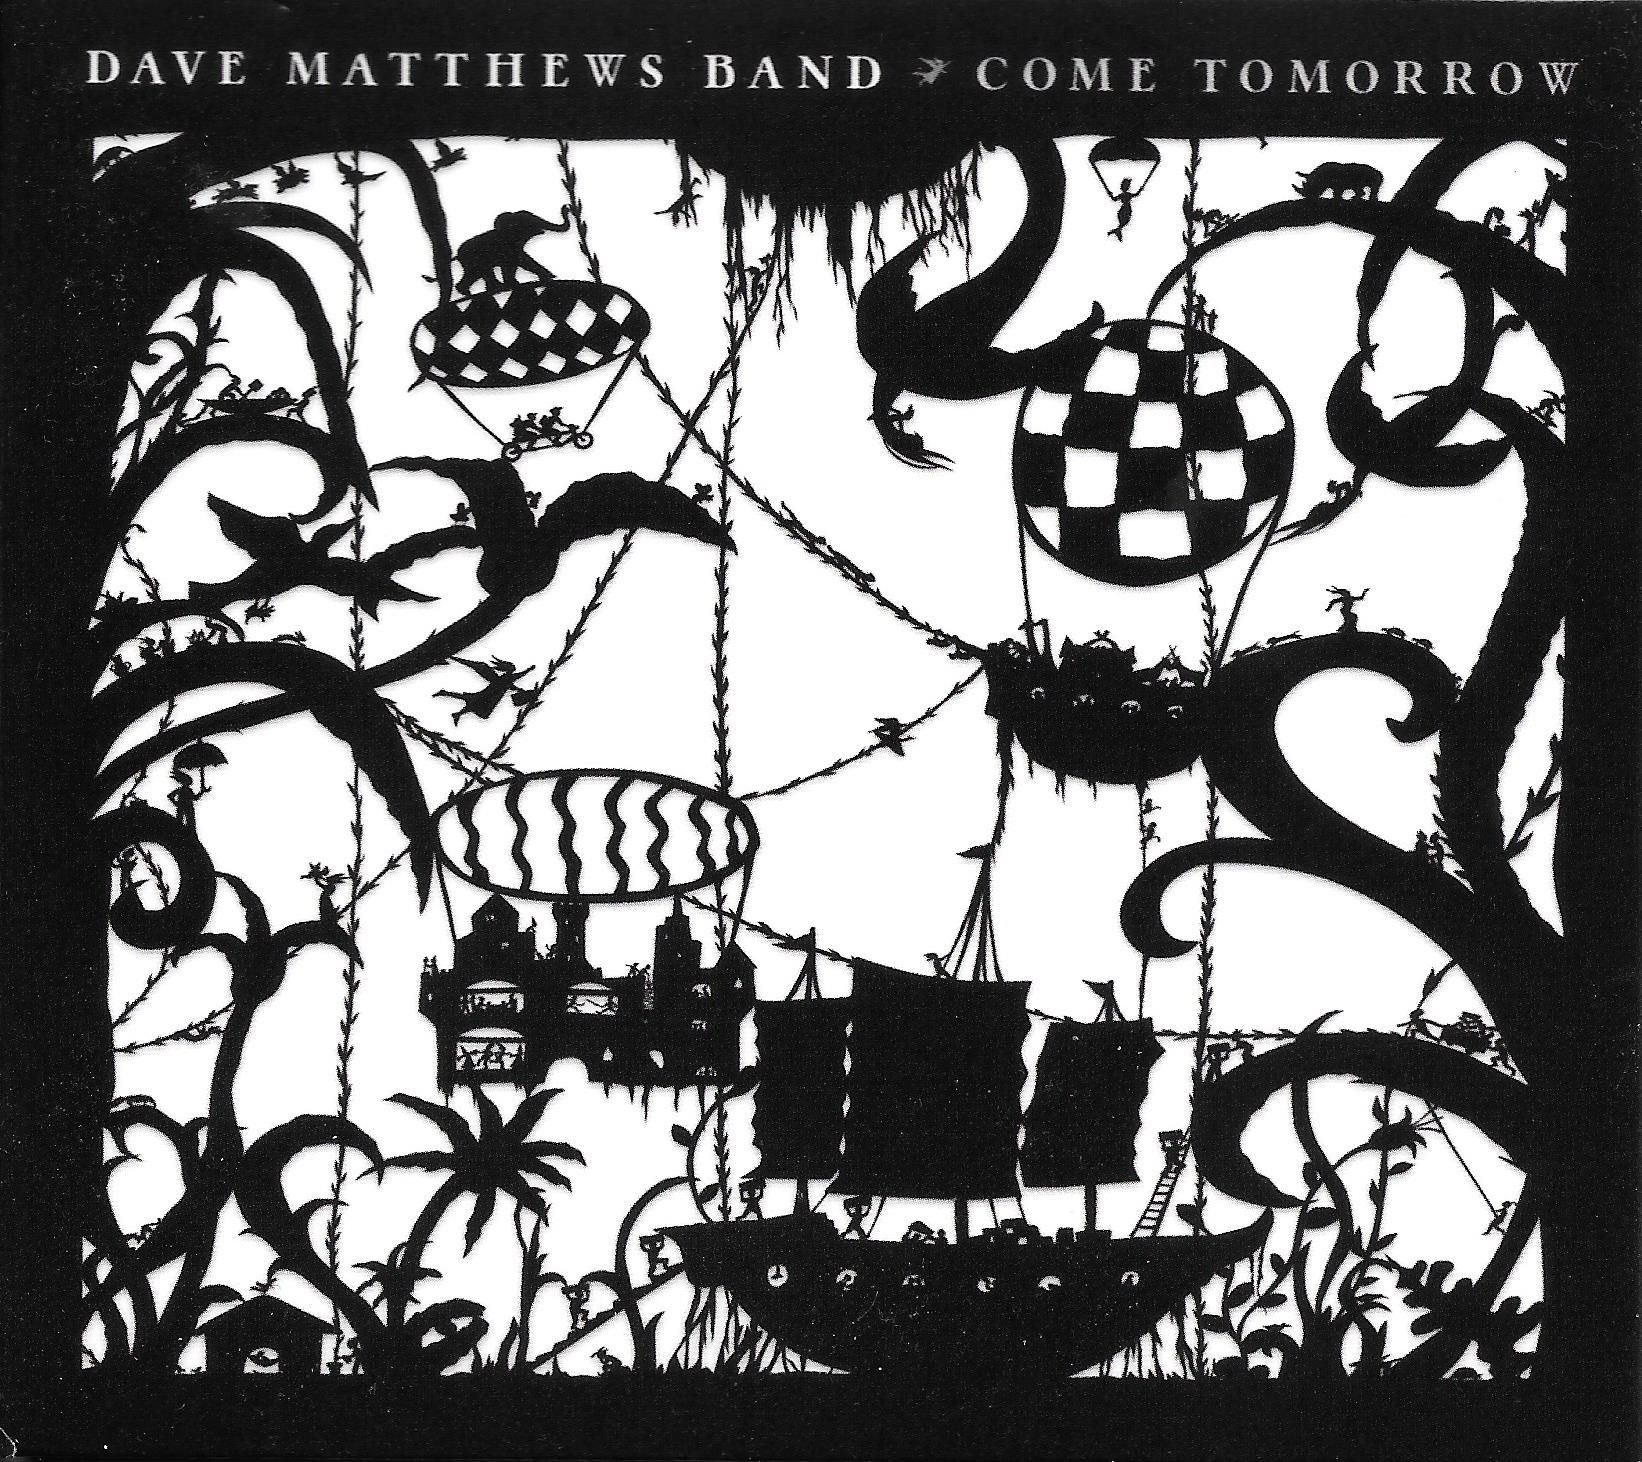 Dave Matthews Band - Come Tomorrow album cover